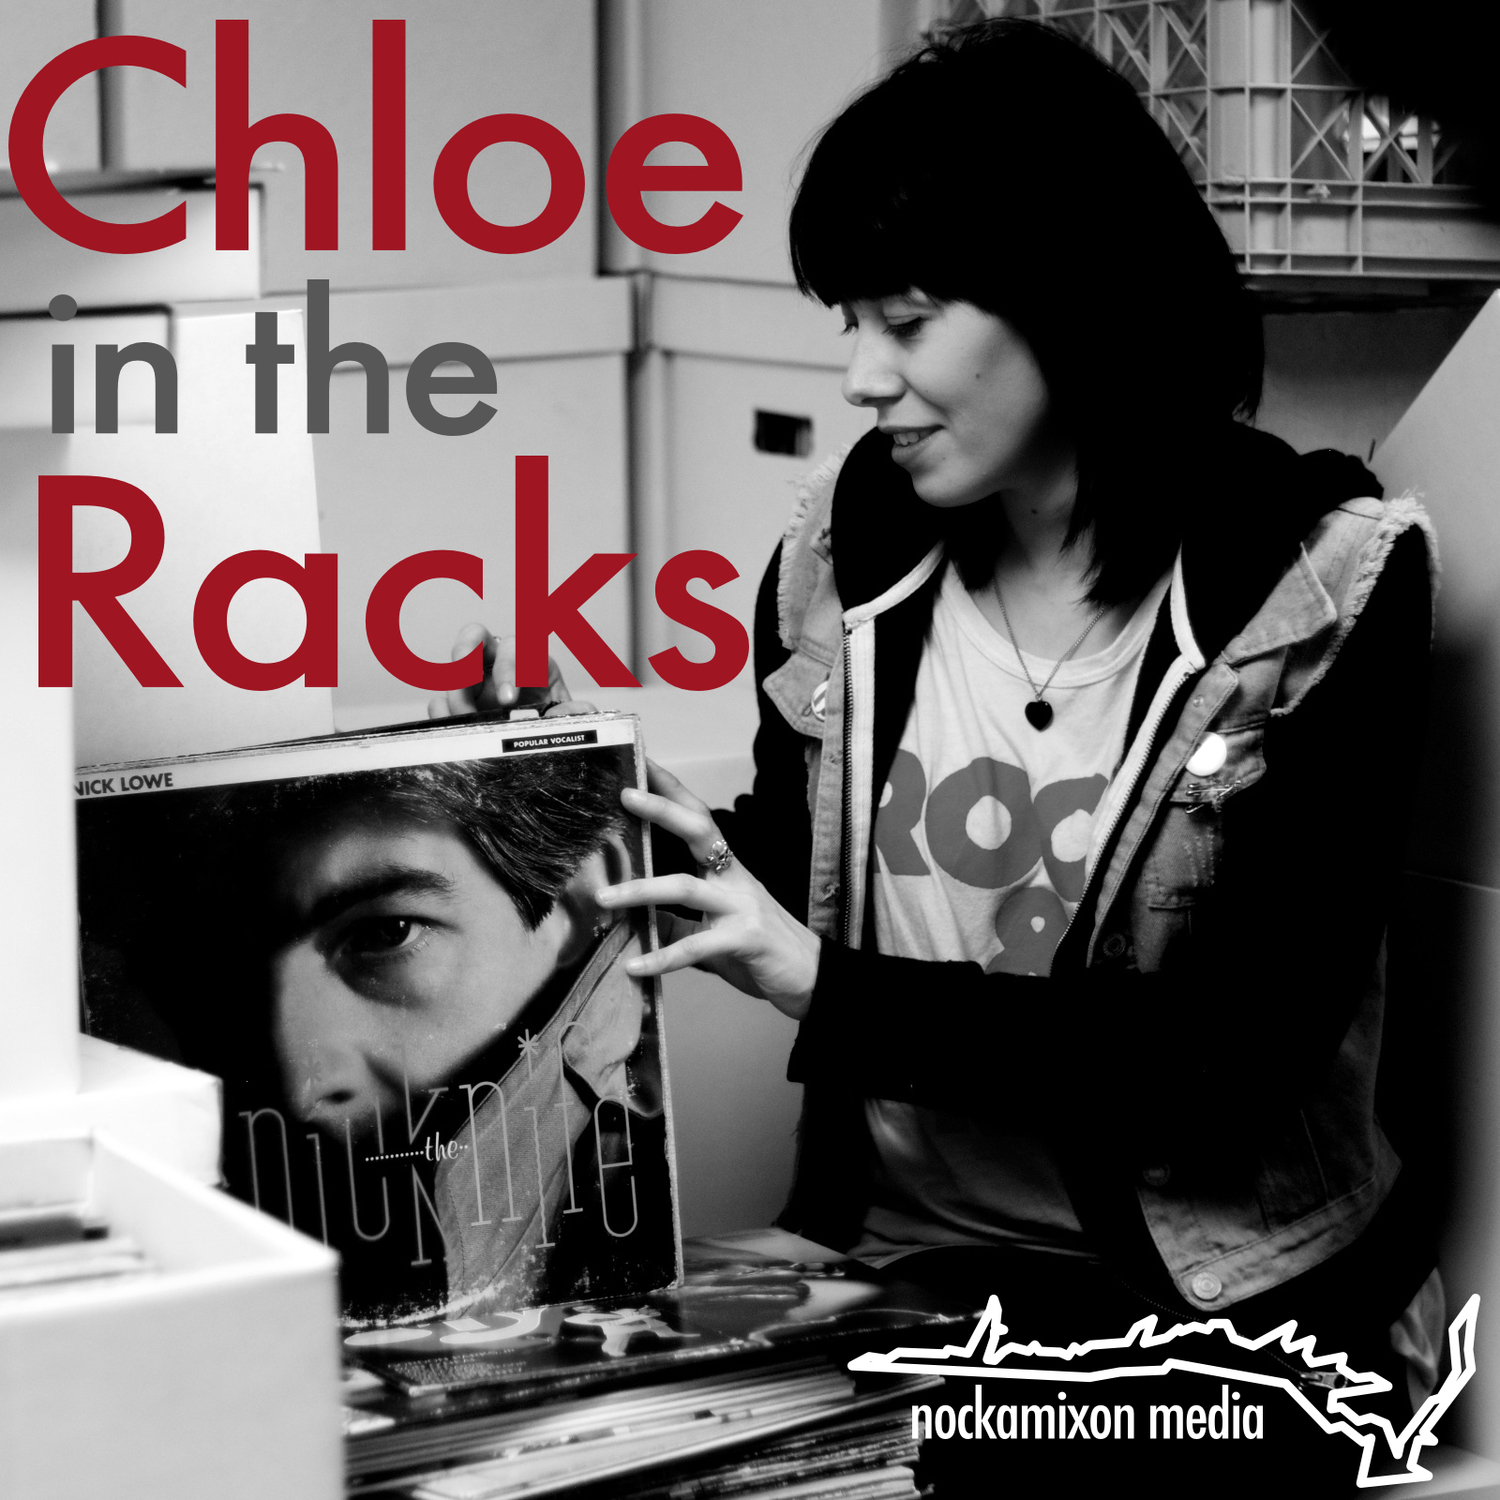 Chloe in the Racks